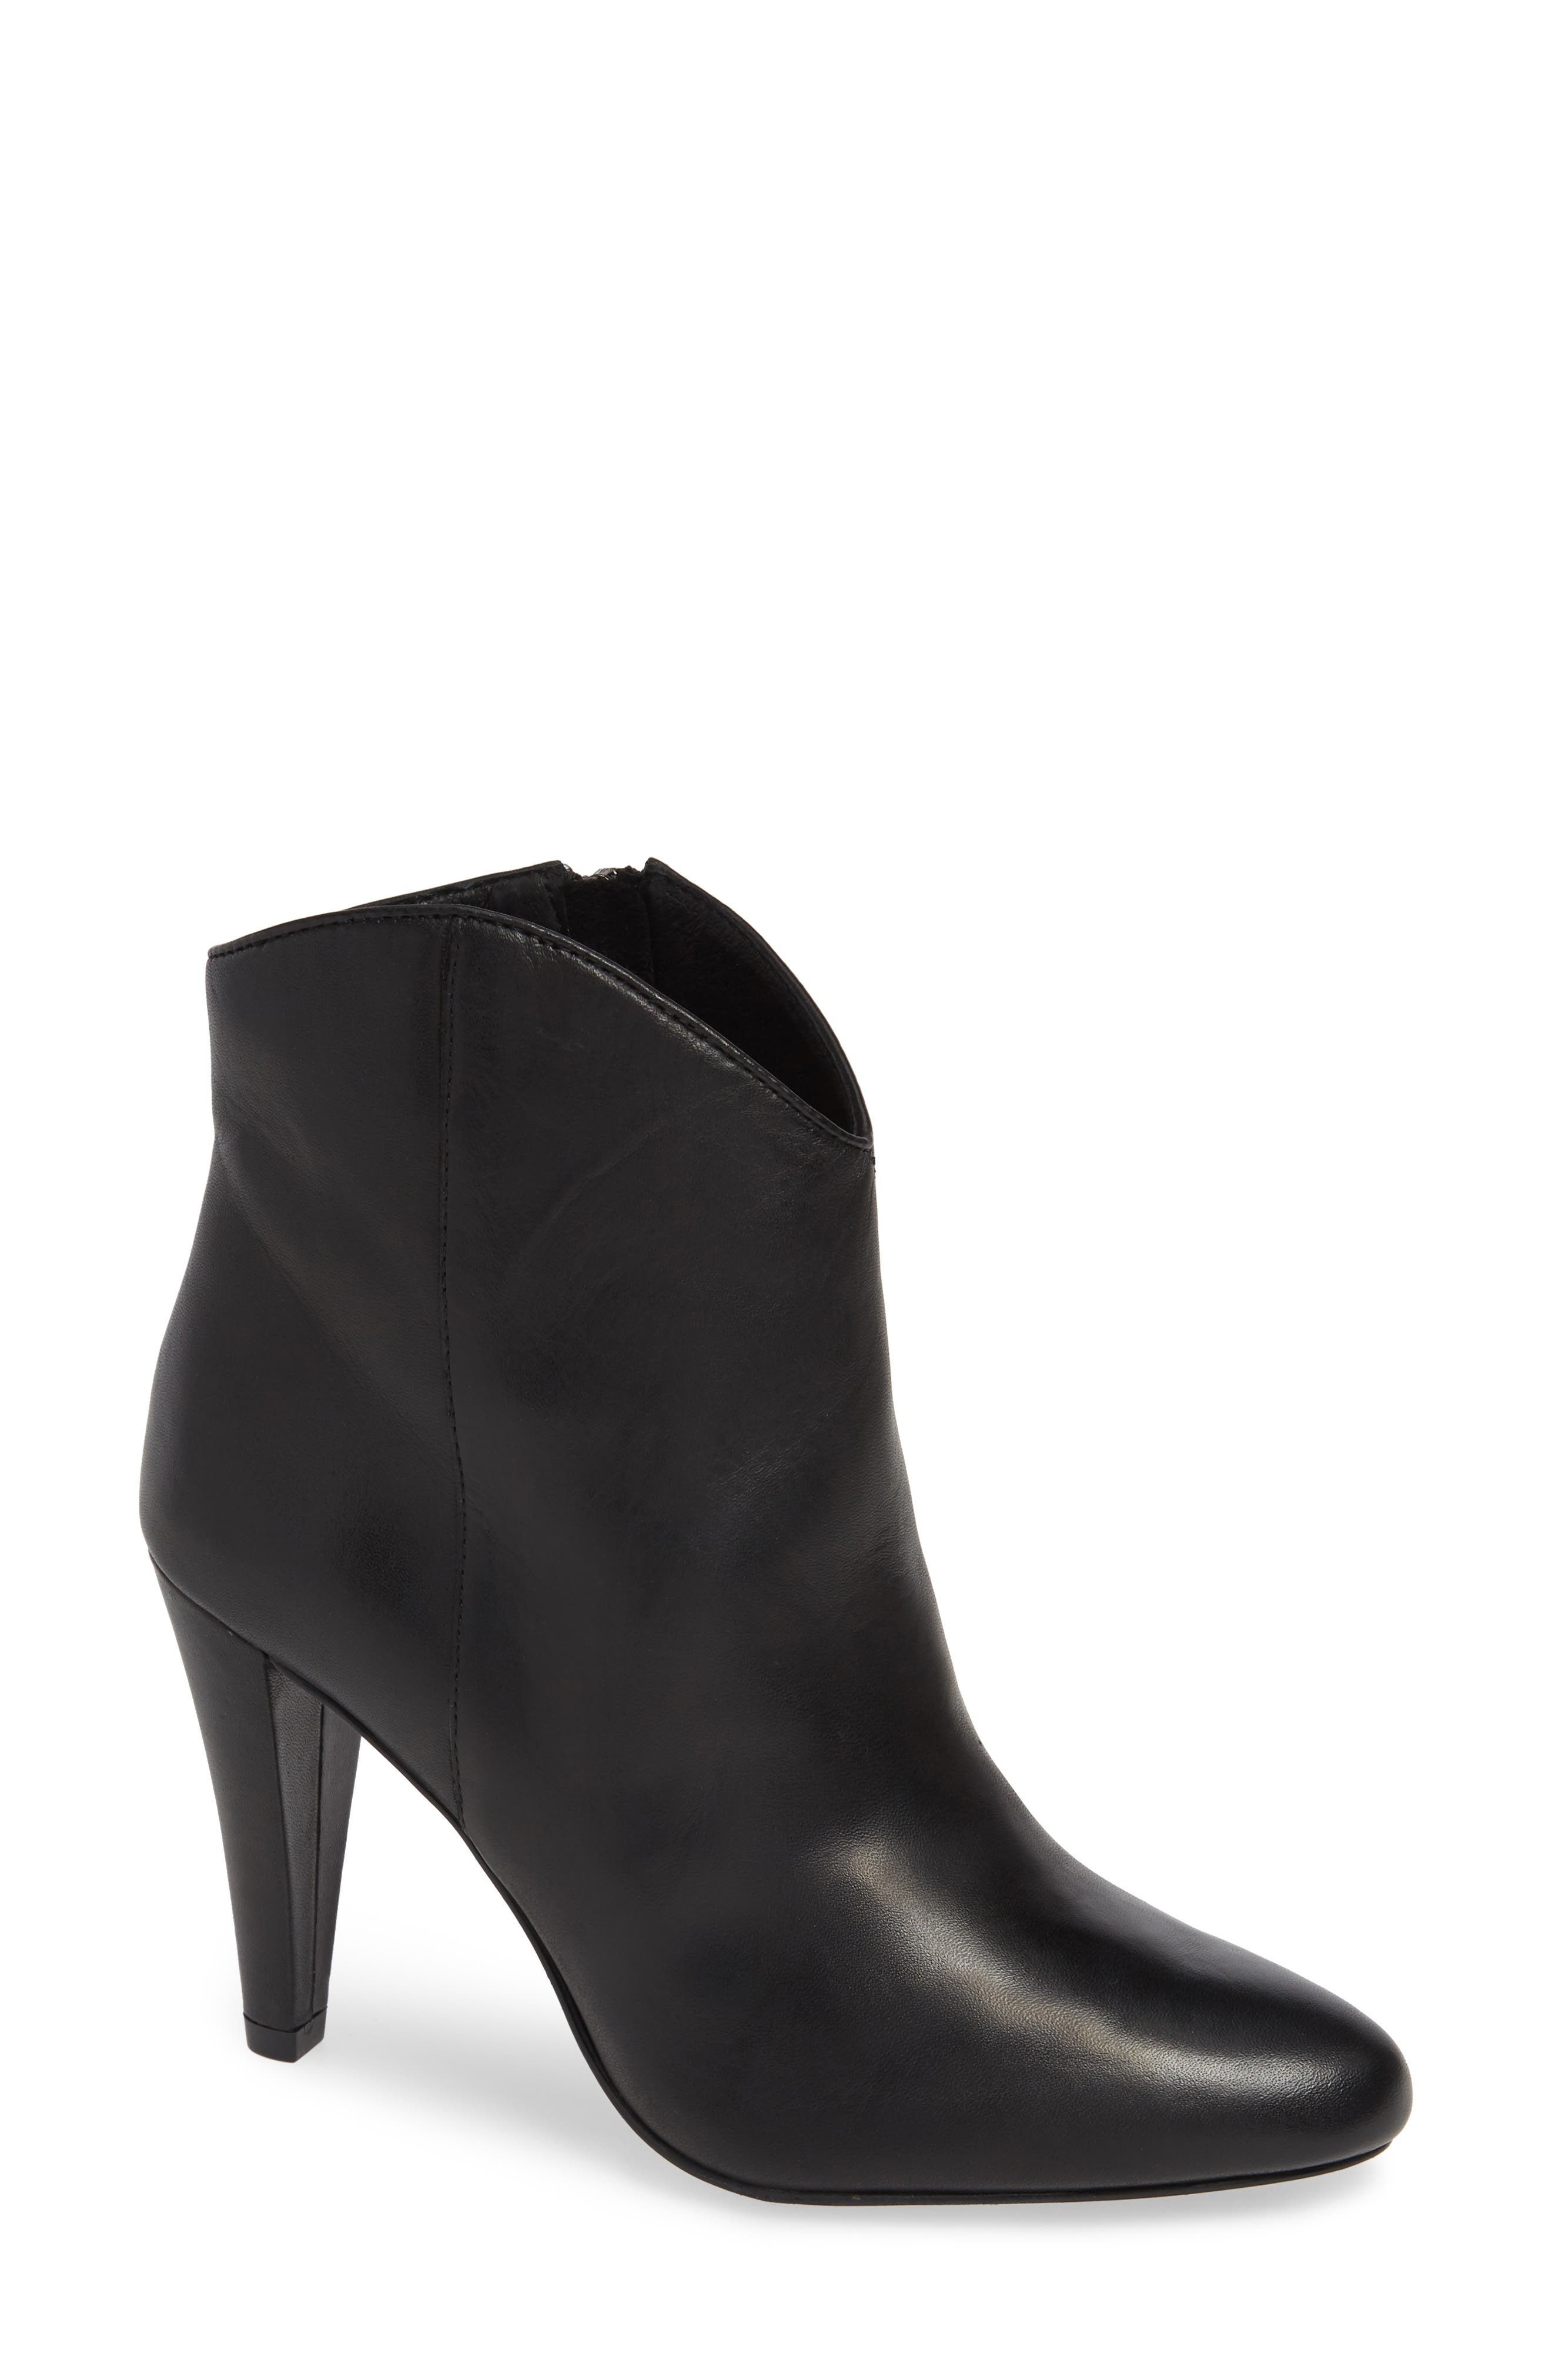 Makayla Bootie,                         Main,                         color, BLACK LEATHER